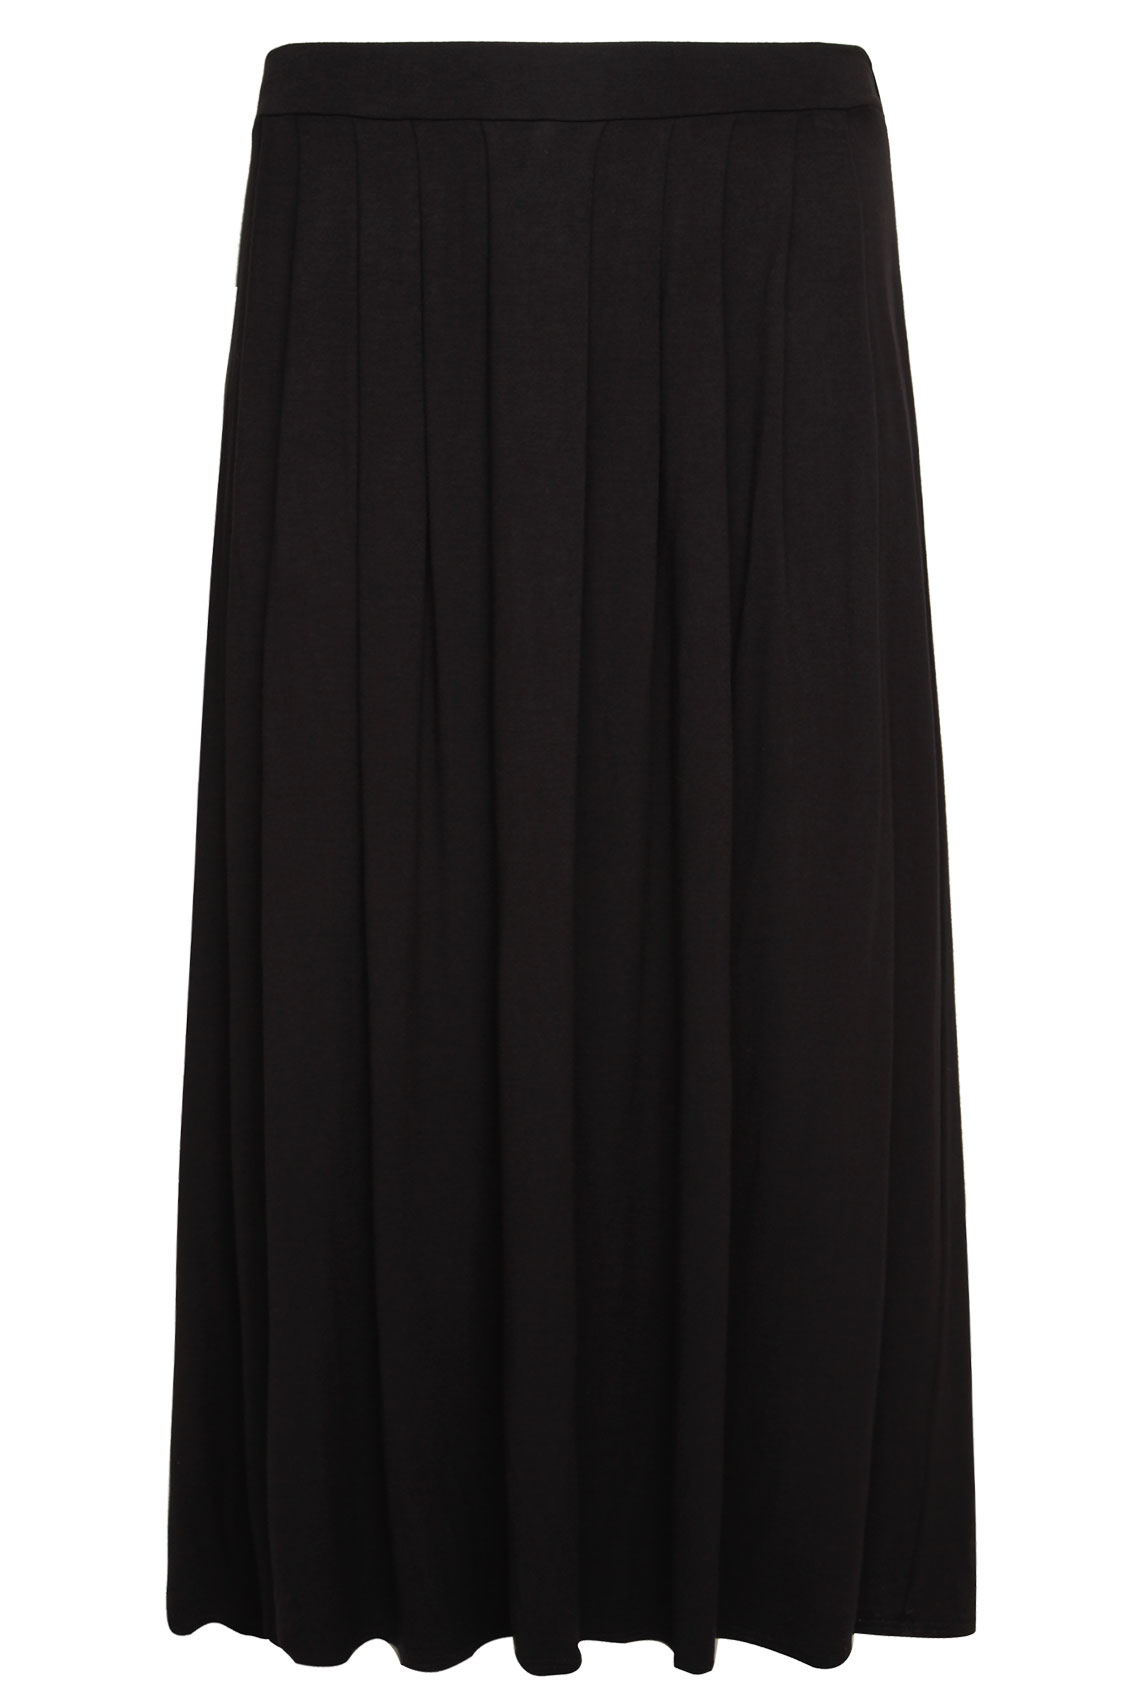 black jersey maxi skirt with pleating detail plus size 16